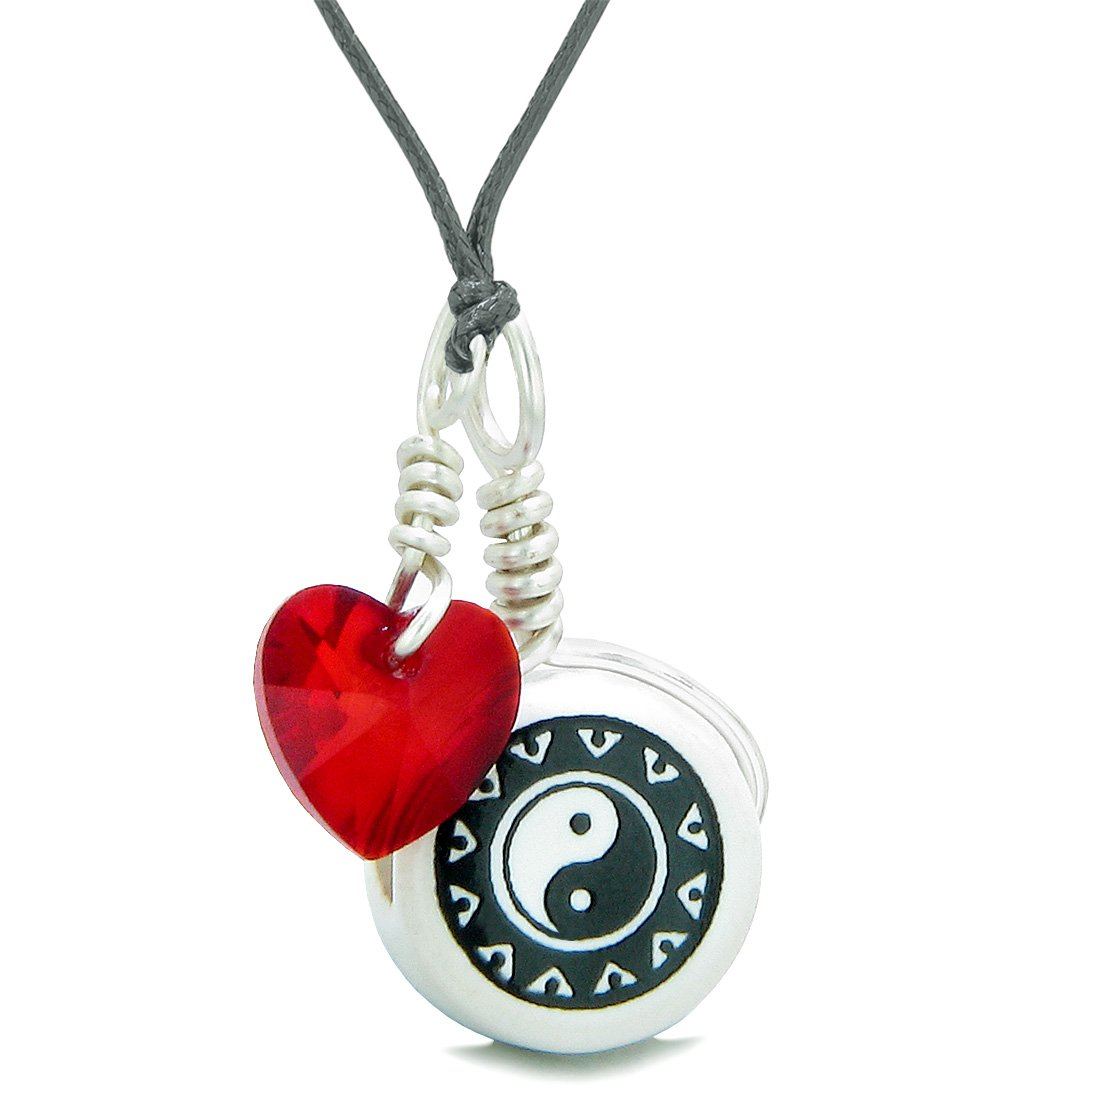 Handcrafted Cute Ceramic Lucky Charm Black White Yin Yang Red Heart Amulet Pendant Adjustable Necklace